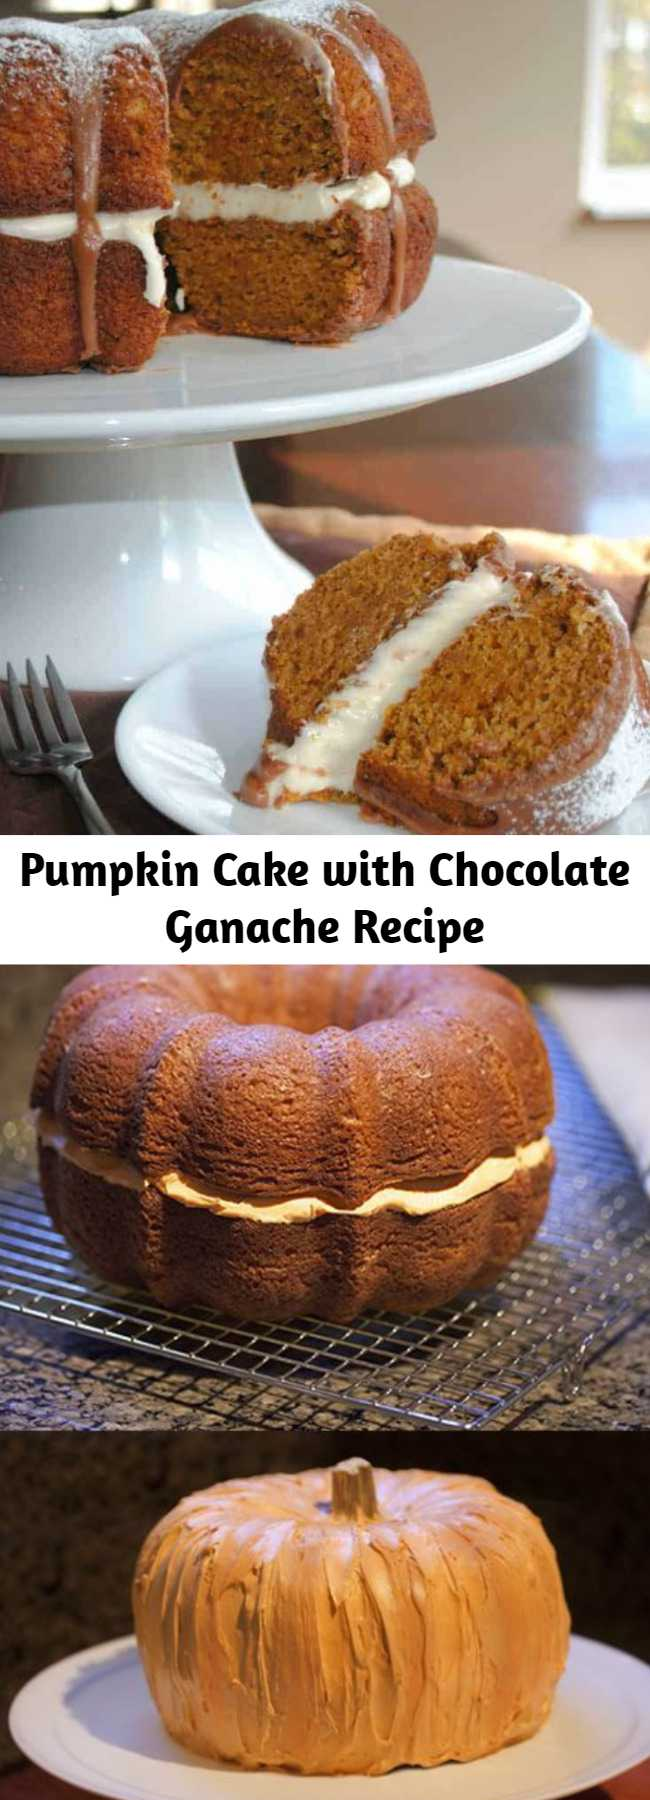 Pumpkin Cake with Chocolate Ganache Recipe - It's so rich and moist! Paired with the cream cheese frosting and chocolate ganache, you just can't go wrong. So go do something right and have a slice of cake!!! Enjoy!